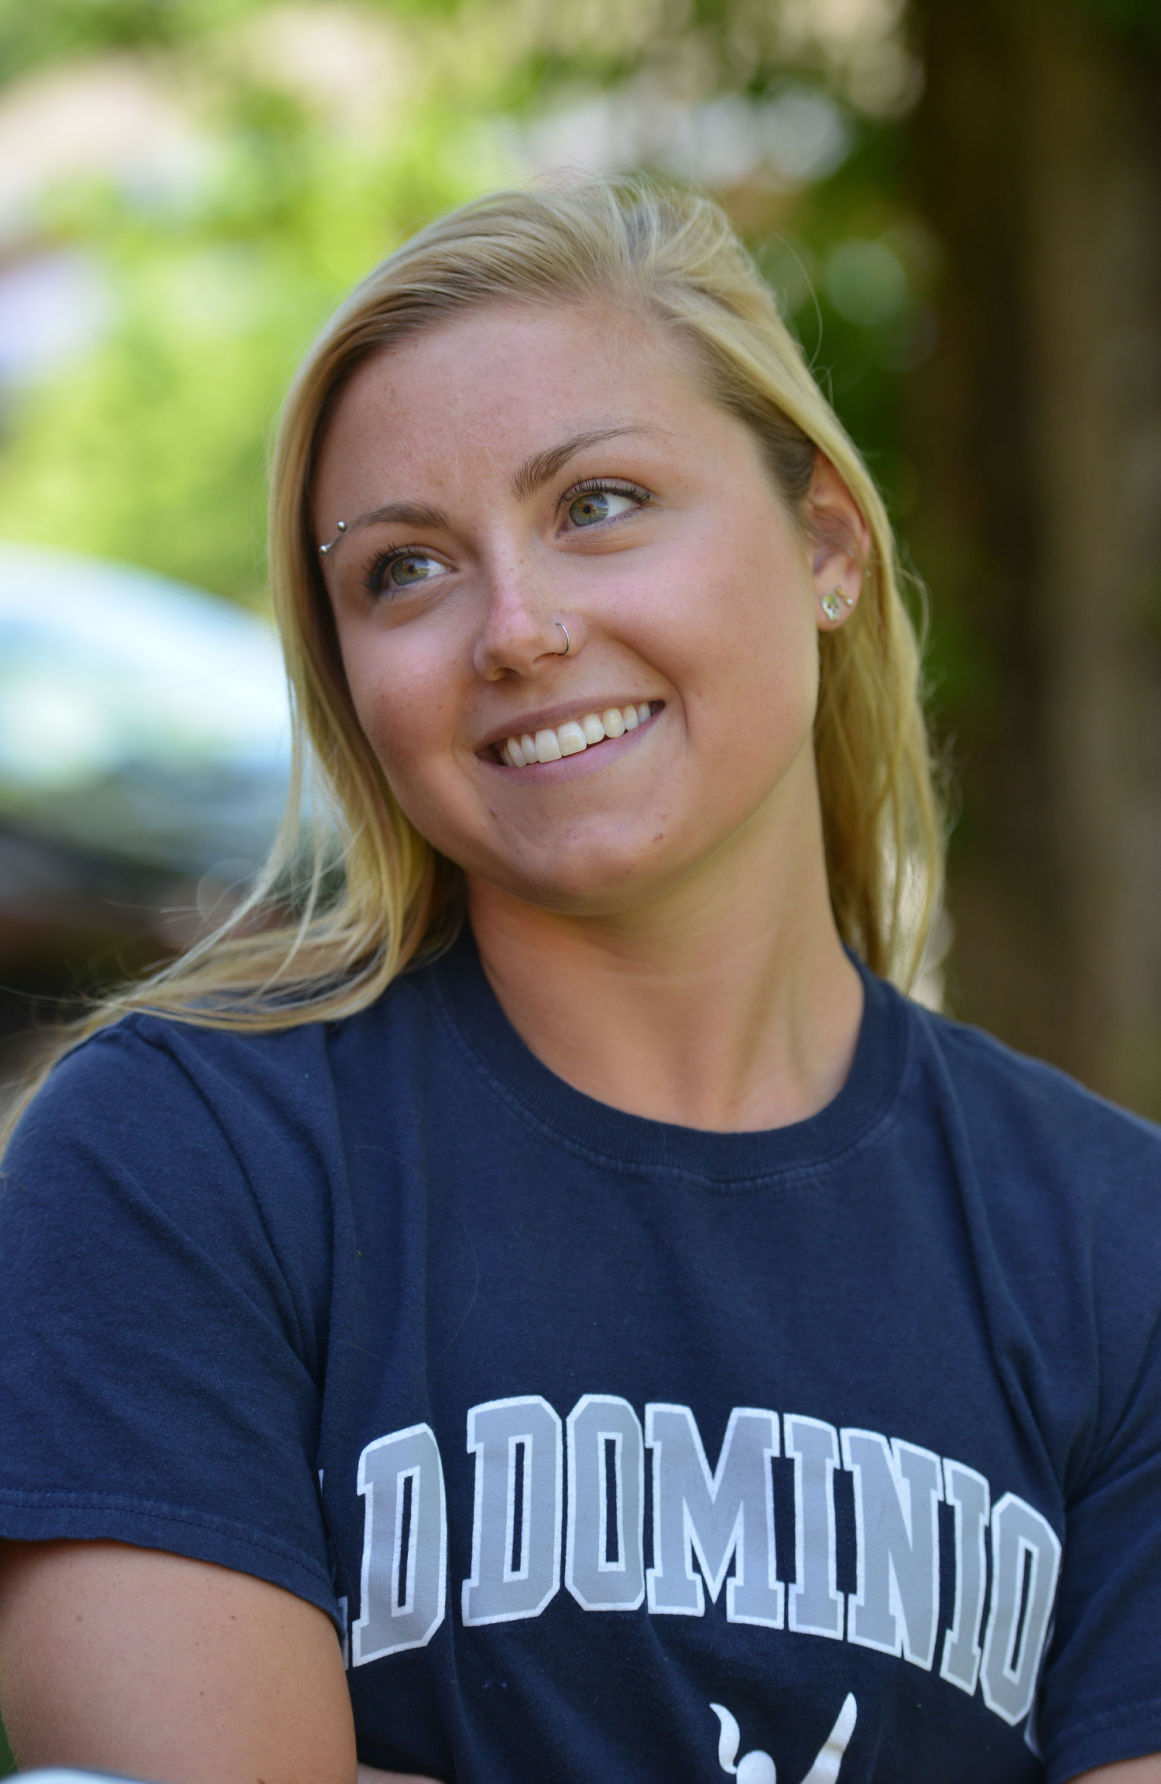 ODU Swimmer Morgan Johnson